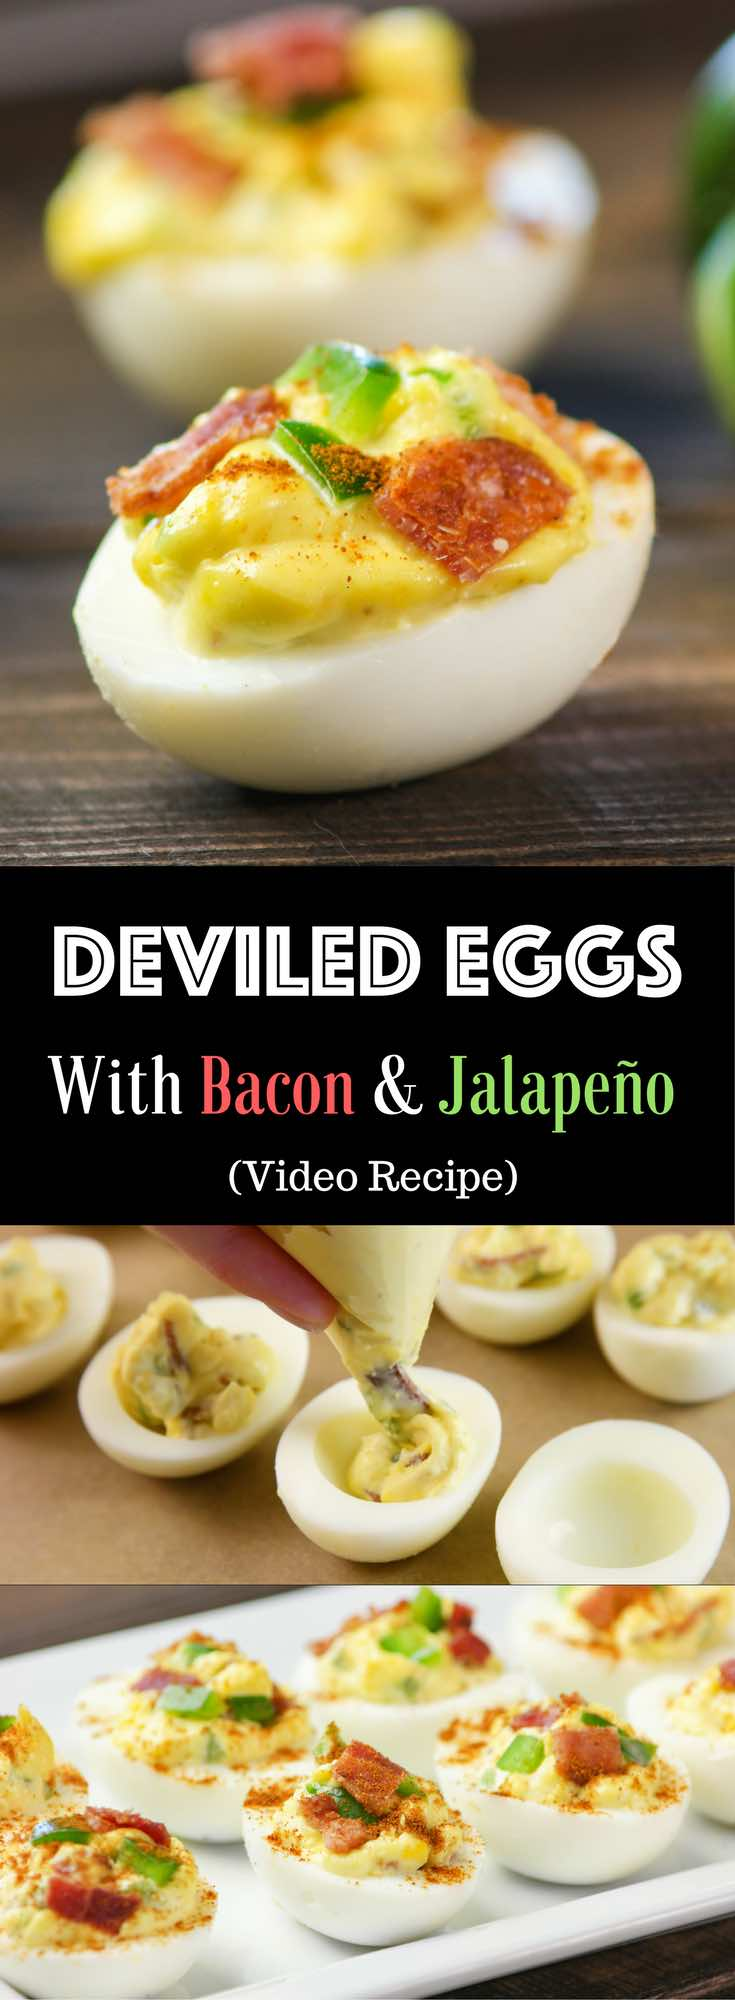 Bacon And Jalapeno Deviled Eggs – the most popular appetizer that will spice up any special occasions, from barbeques, Mother's Day Brunch to Father's Day Dinner! All you need is some simple ingredients: eggs, bacon, Jalapeno, mayonnaise, mustard, rice vinegar and sugar. So easy and so delicious! Quick and easy recipe. Party Food. Video recipe. | Tipbuzz.com